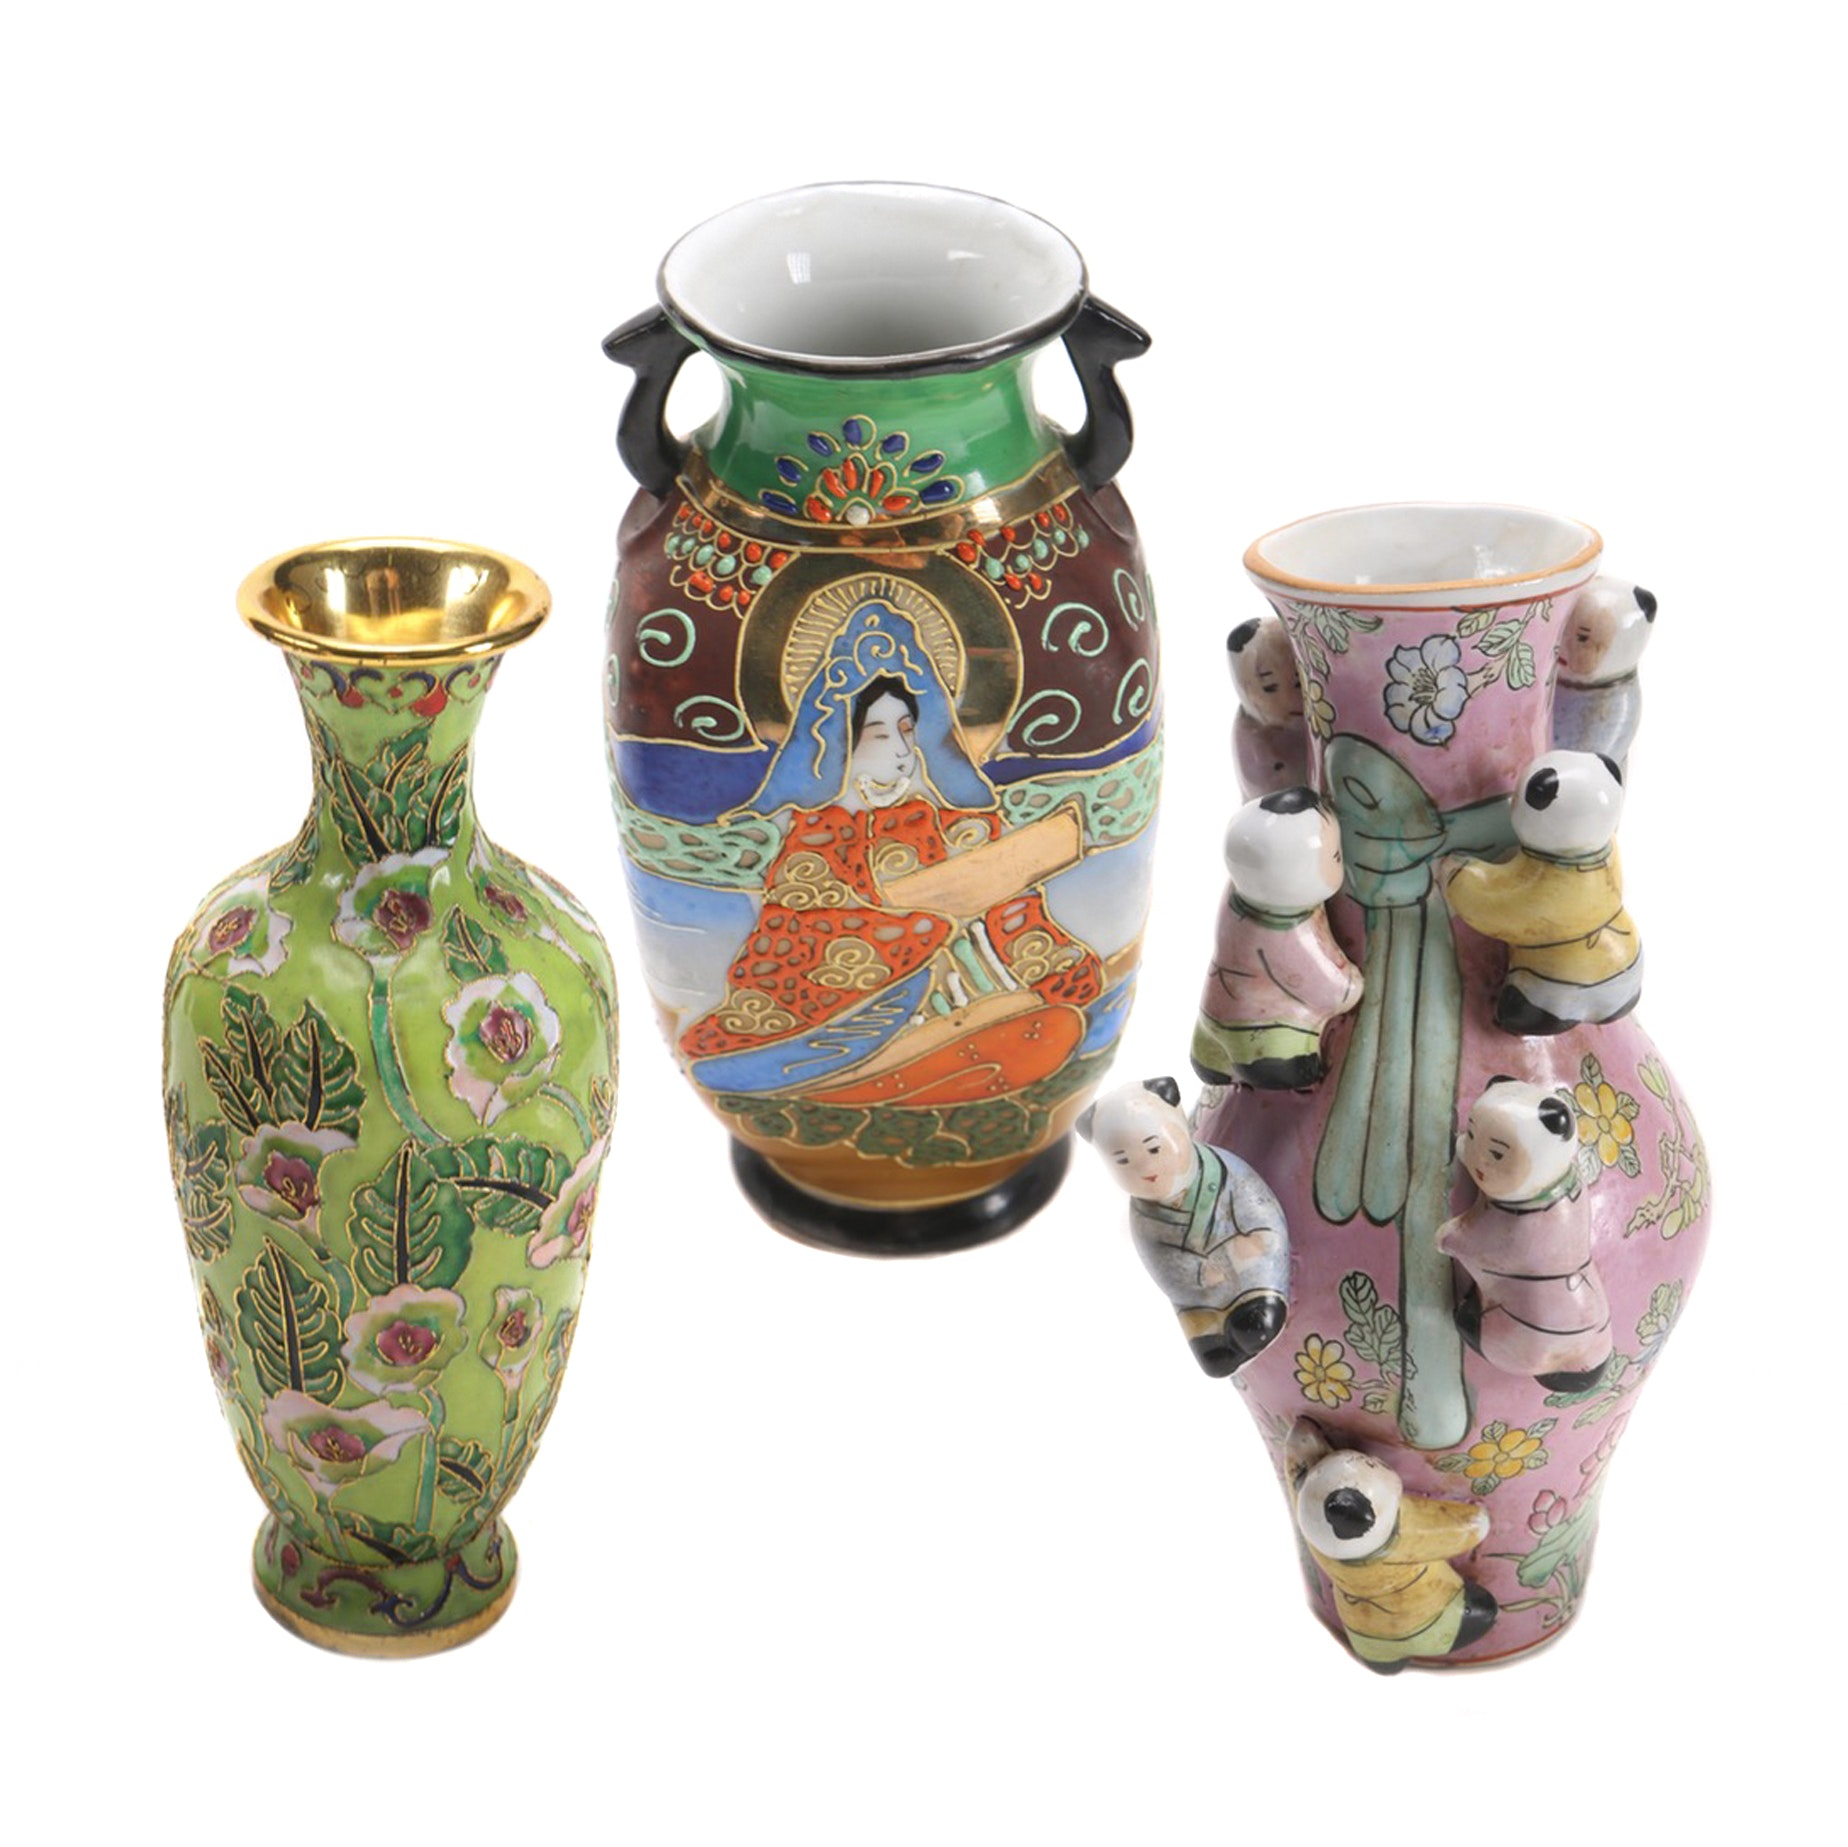 Selection of Asian Inspired Vases